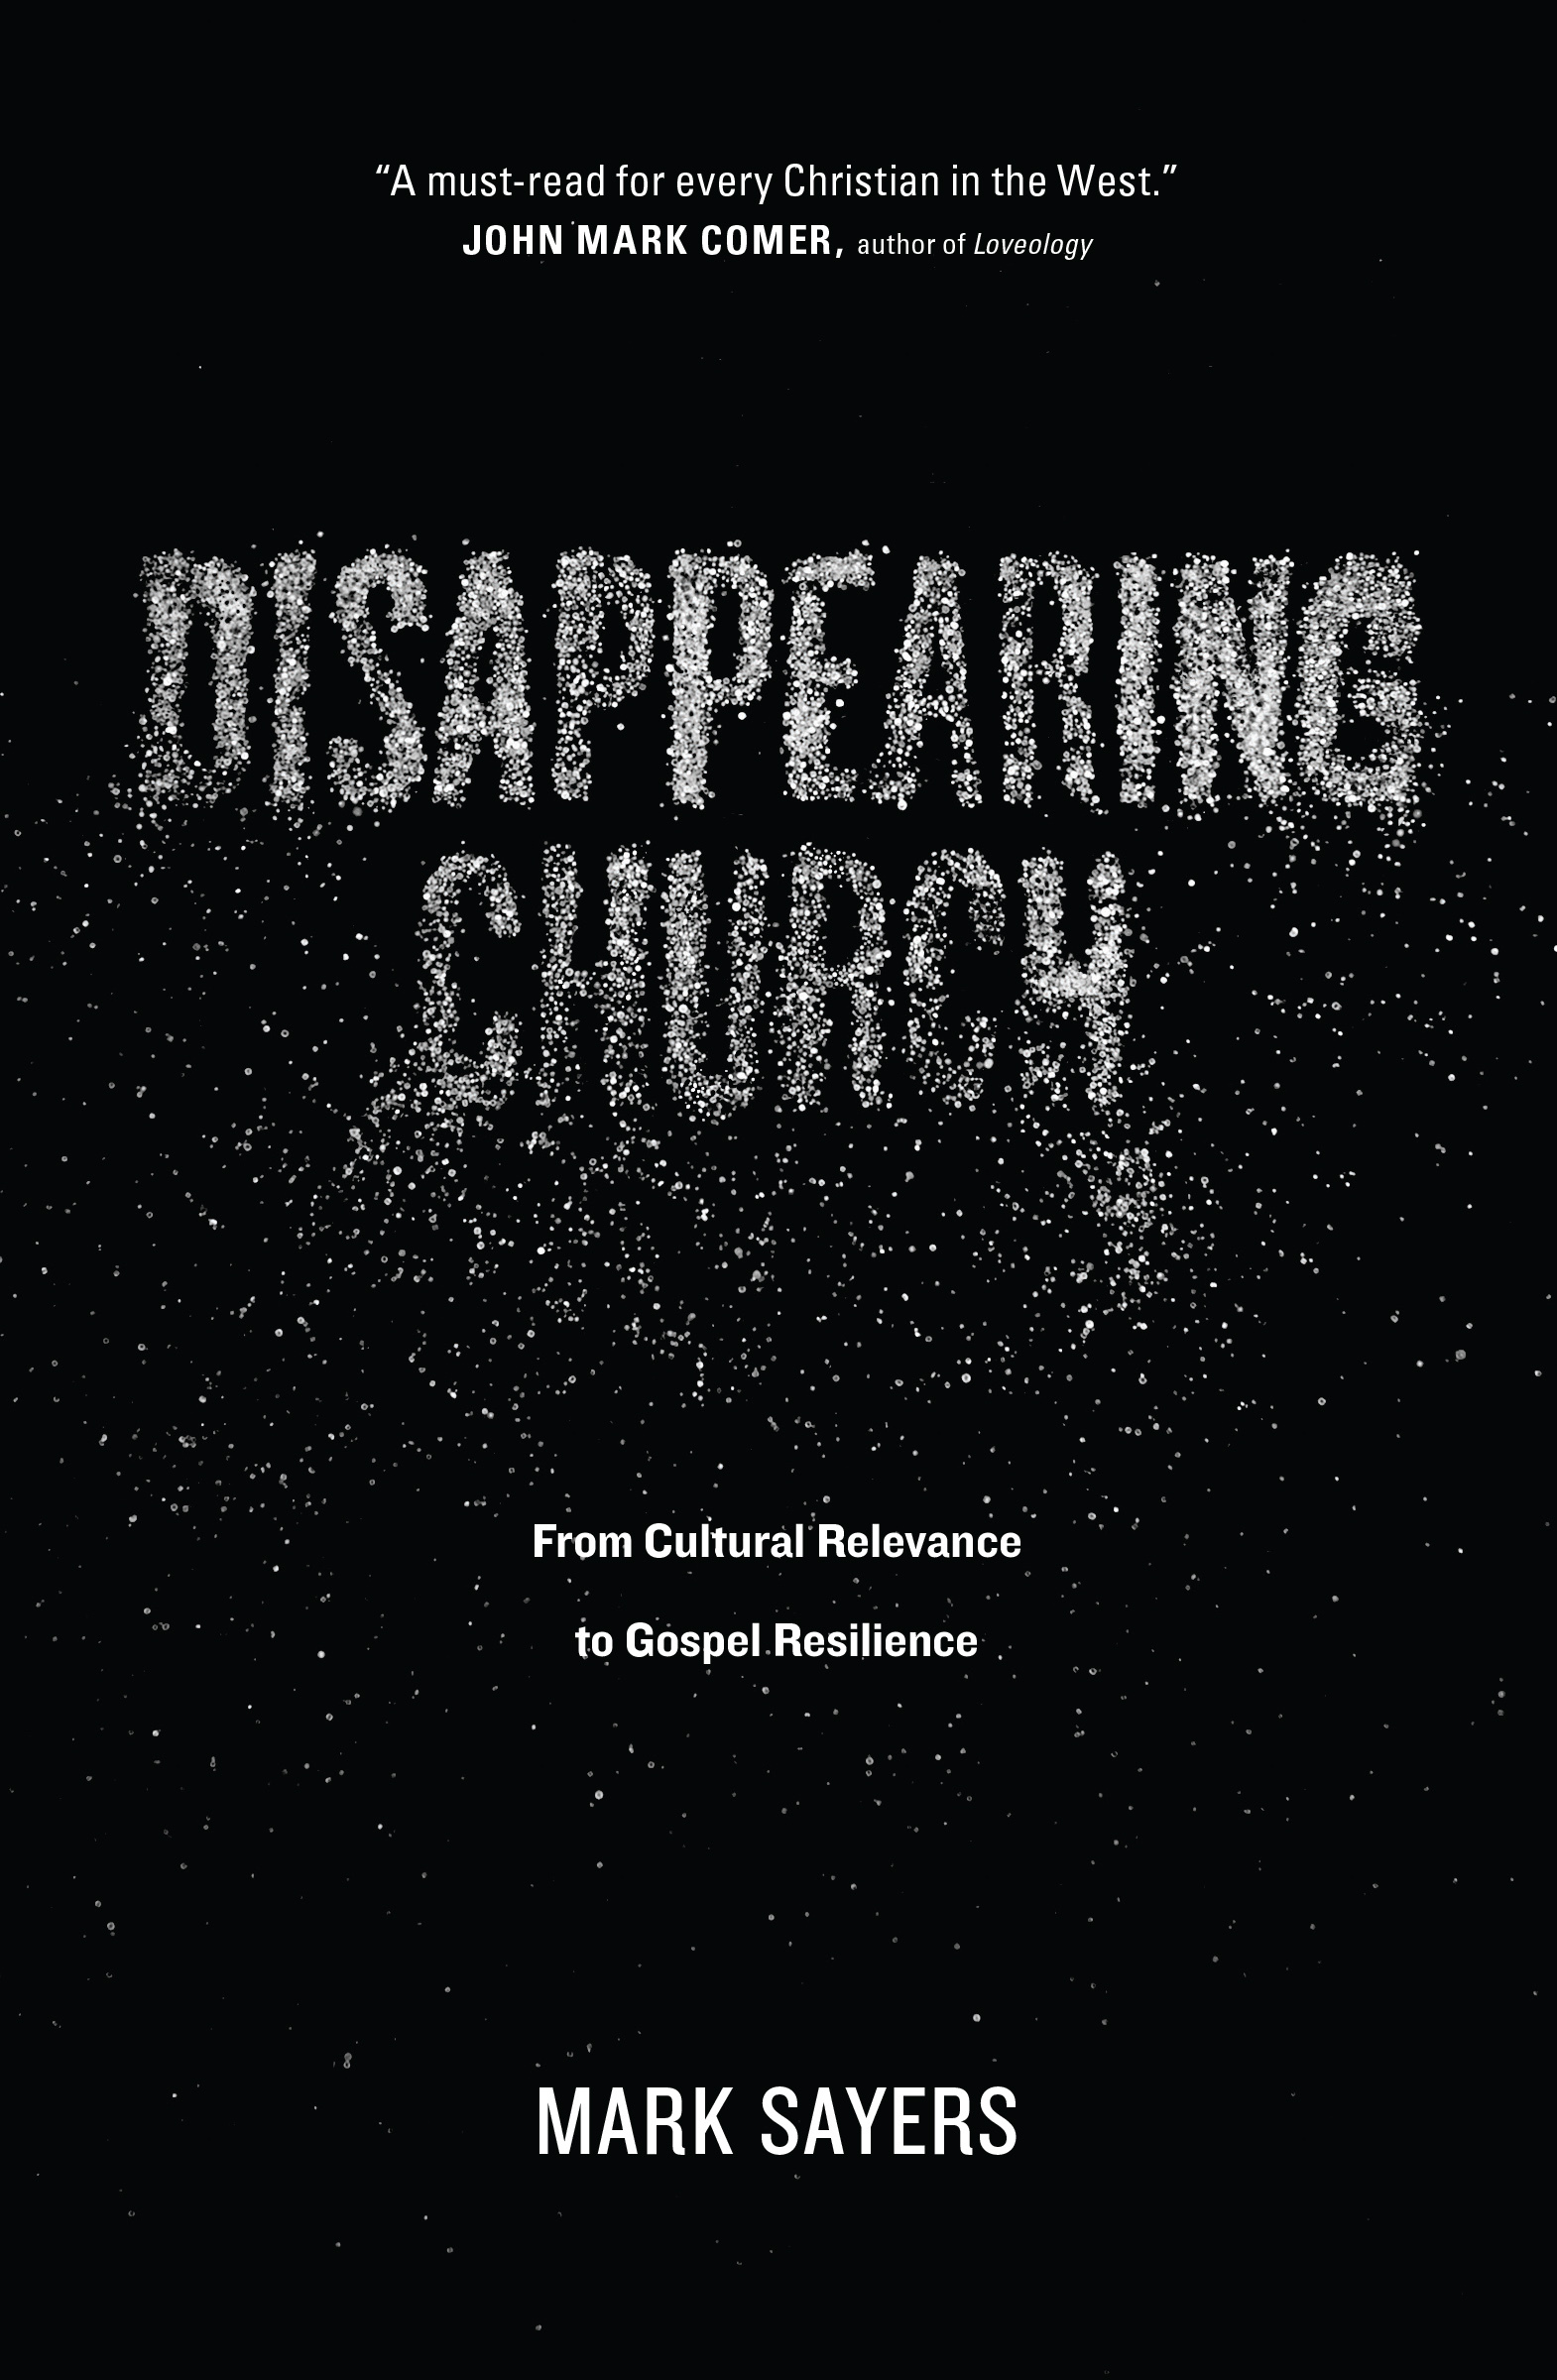 Disappearing Church From Cultural Relevance to Gospel Resilience